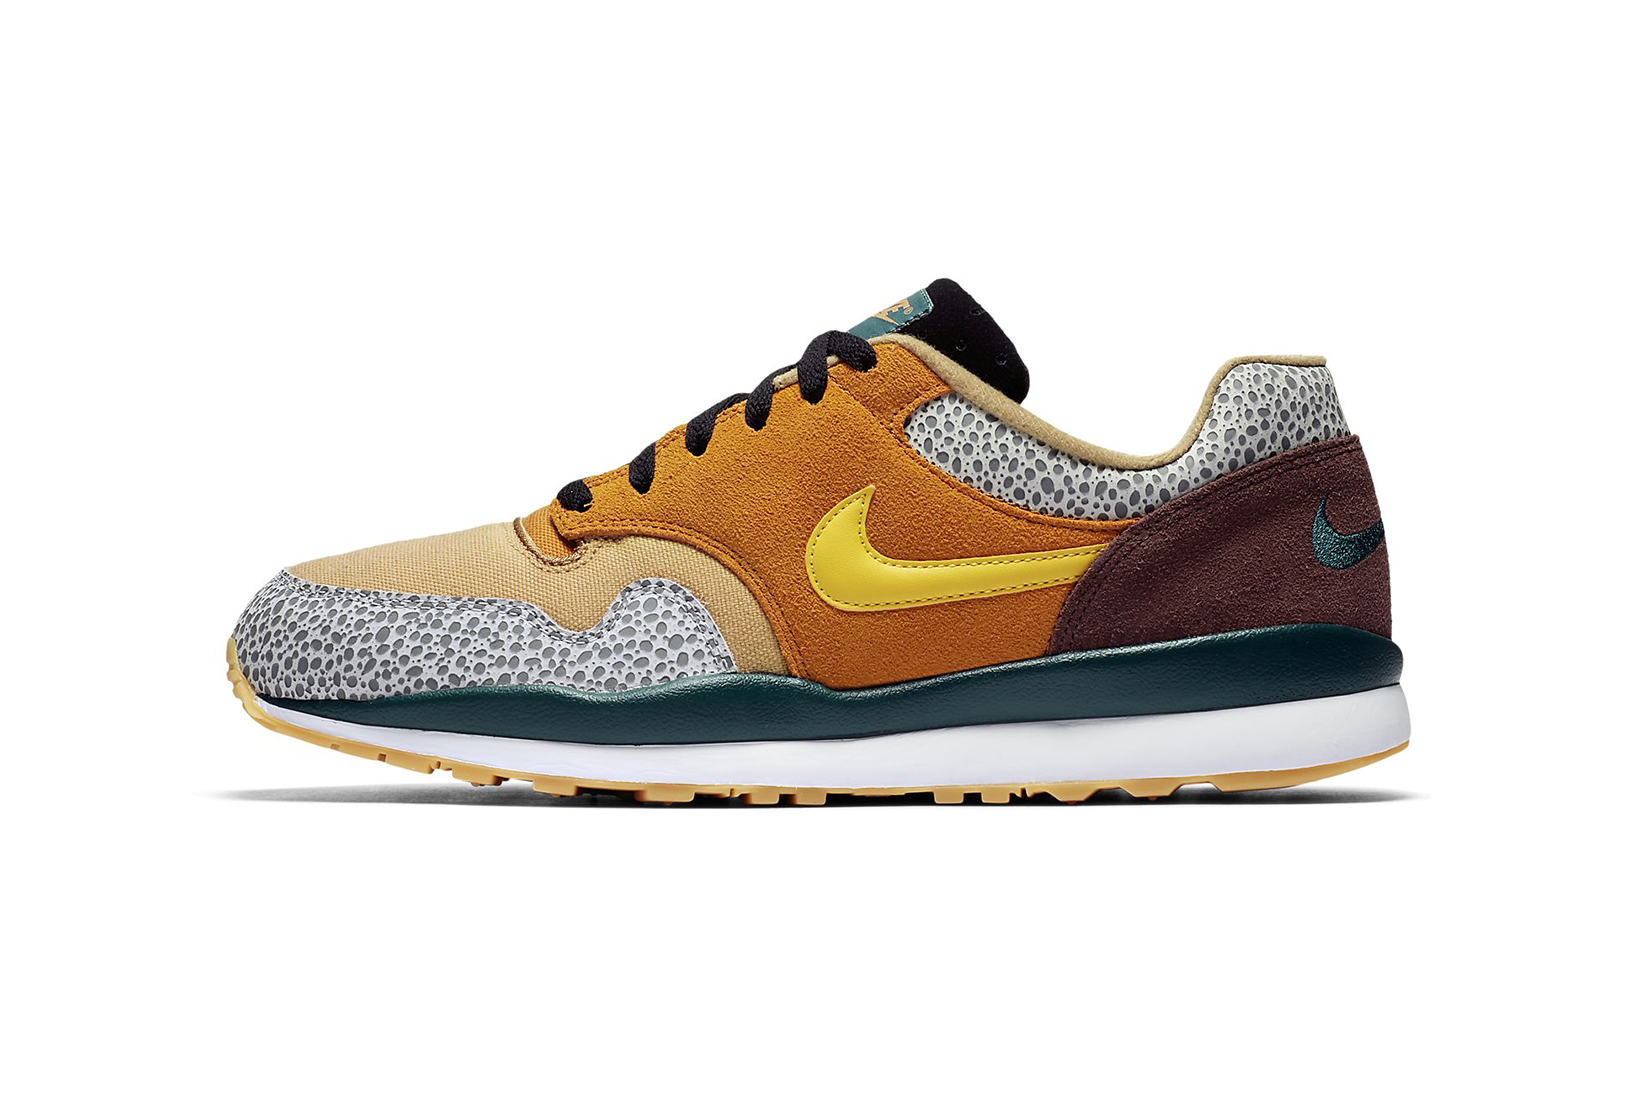 Nike Air Safari SE atmos june 2018 release date info drop sneakers shoes footwear